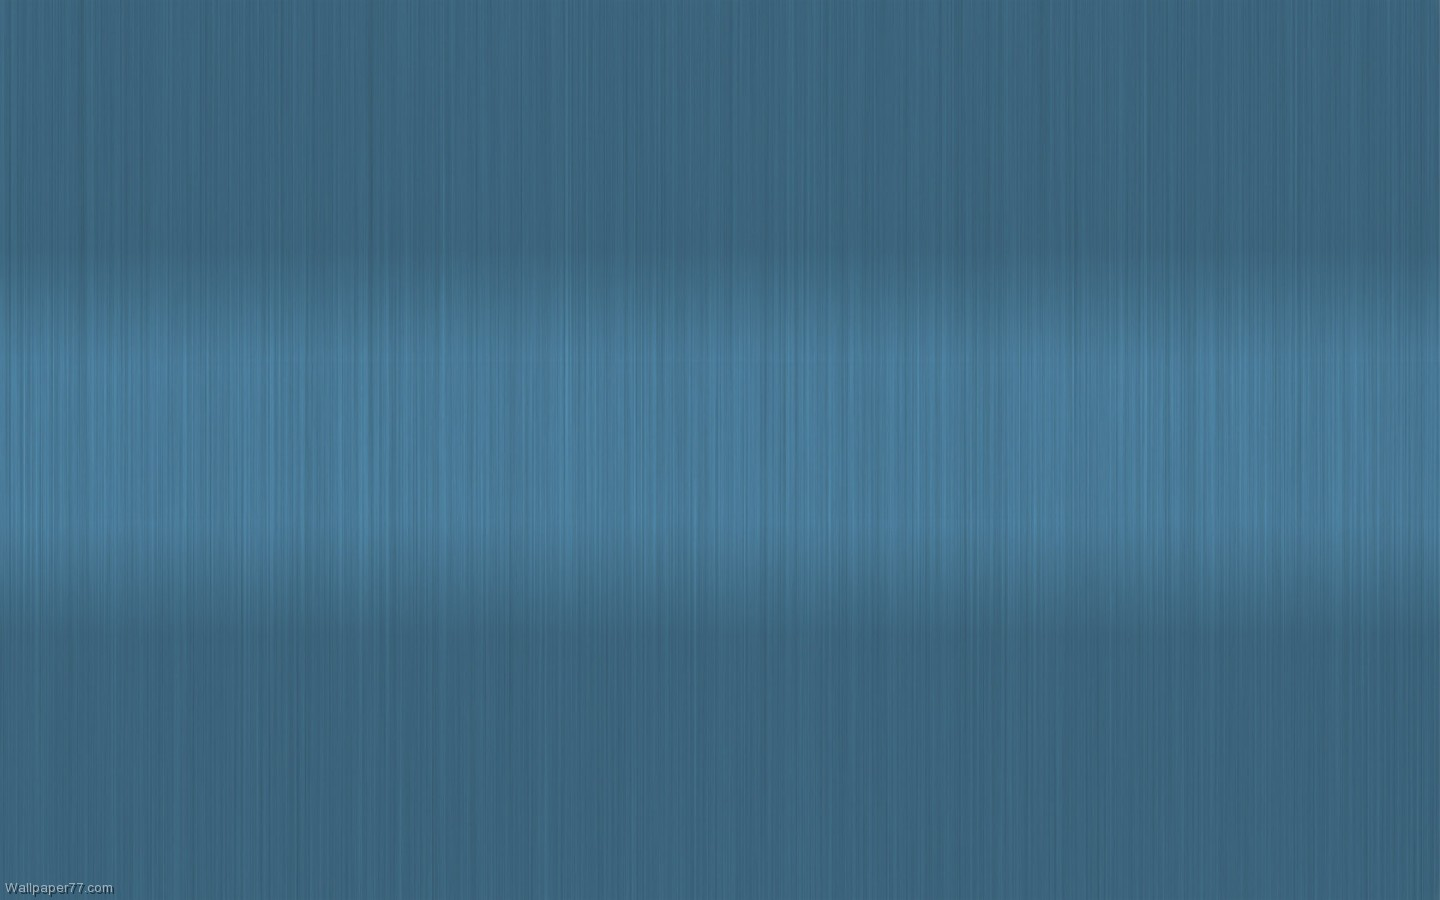 blue-background-patterns